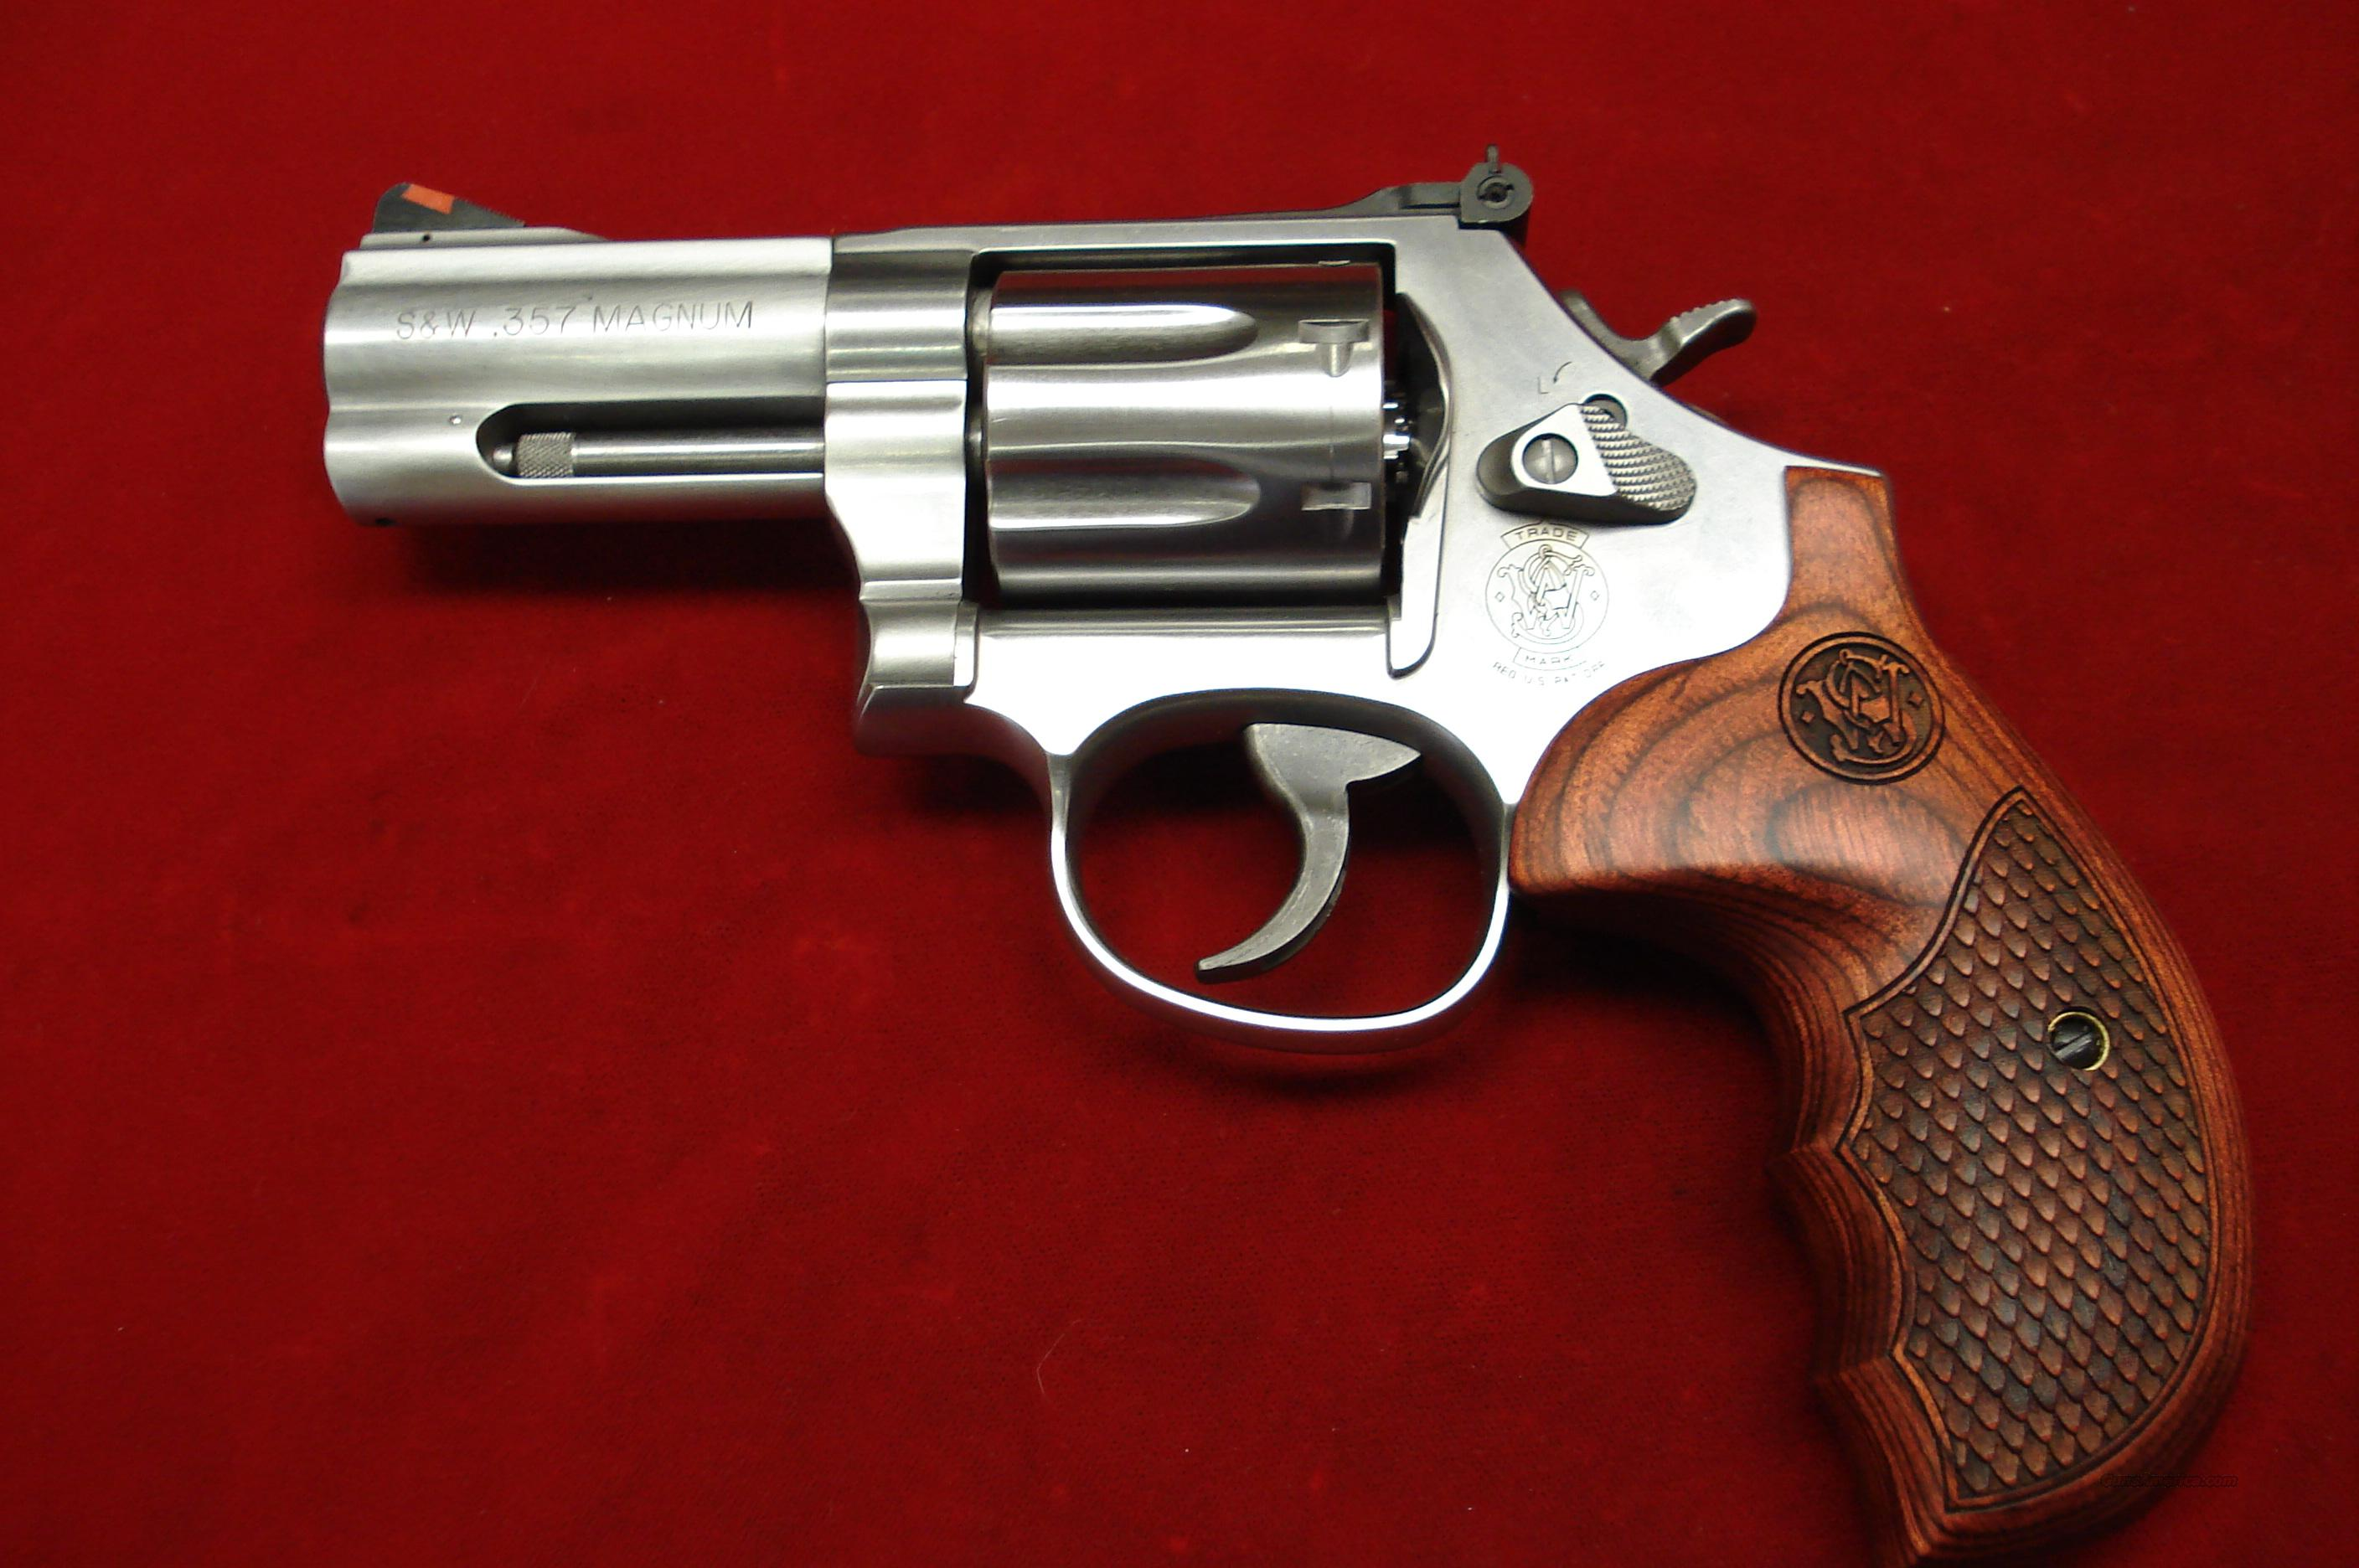 smith and wesson model 686 plus 3 deluxe 357ma for sale. Black Bedroom Furniture Sets. Home Design Ideas